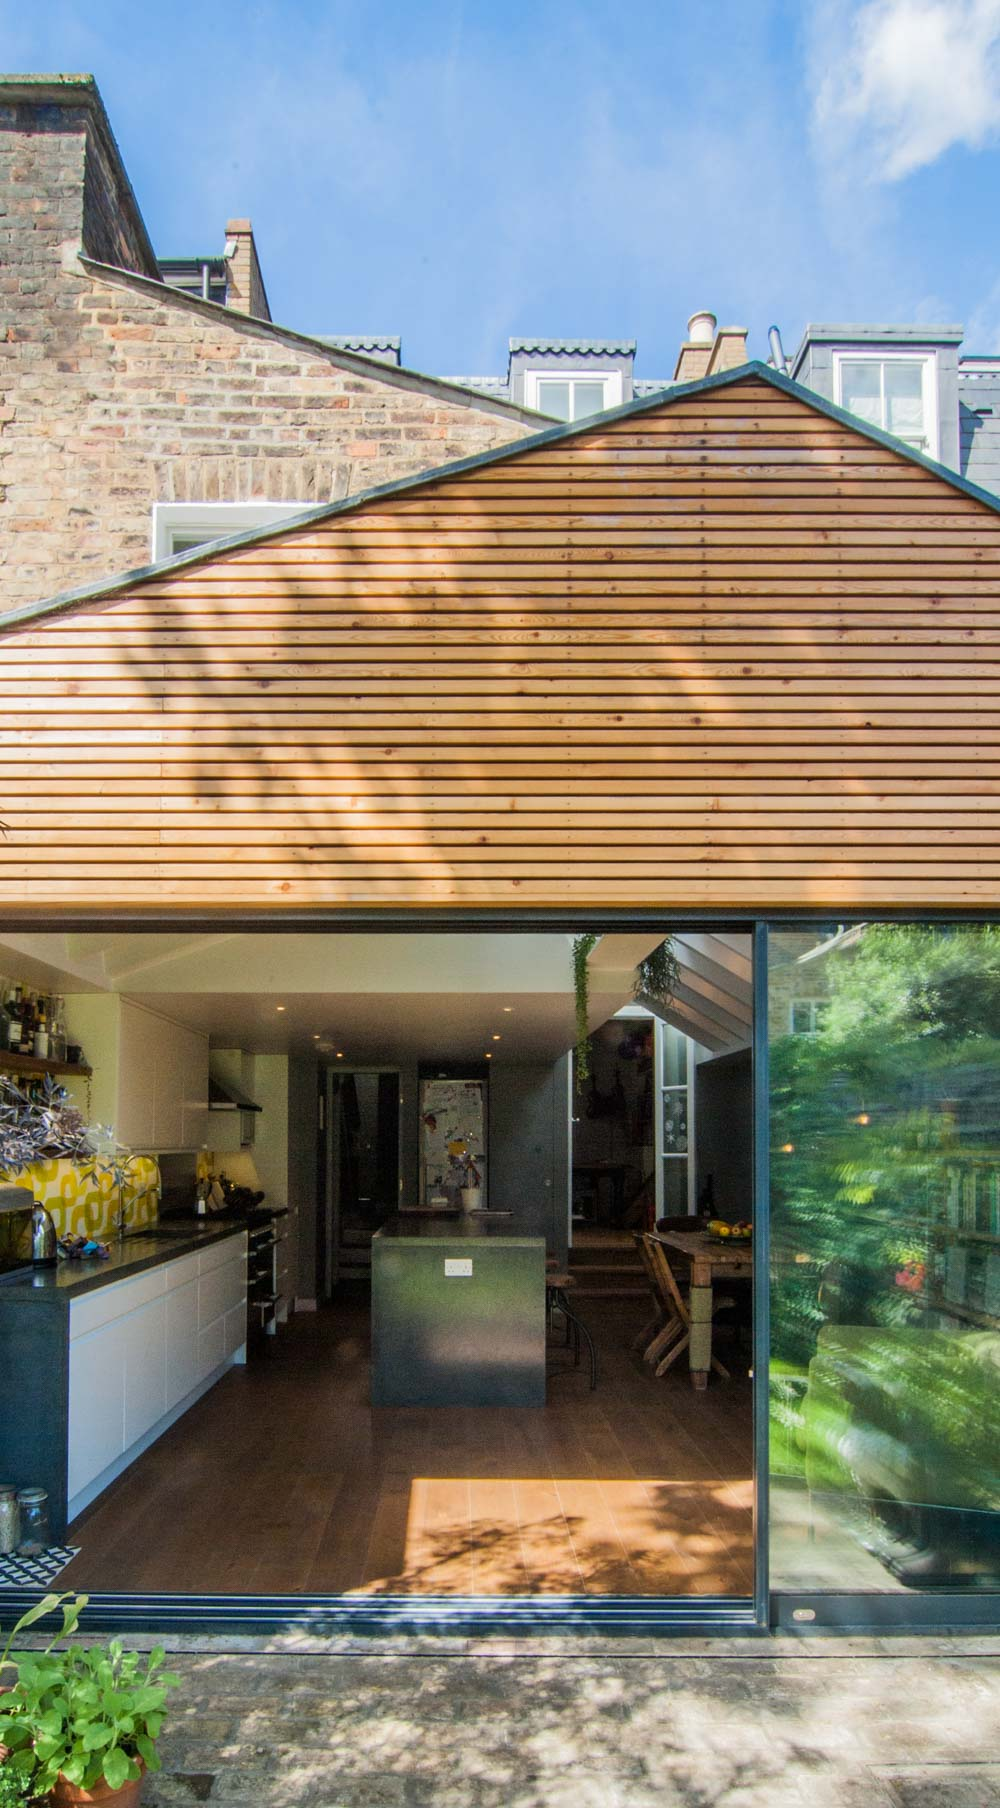 Garden & kitchen are seamlessly connected in this gabled rear extension in Hackney.